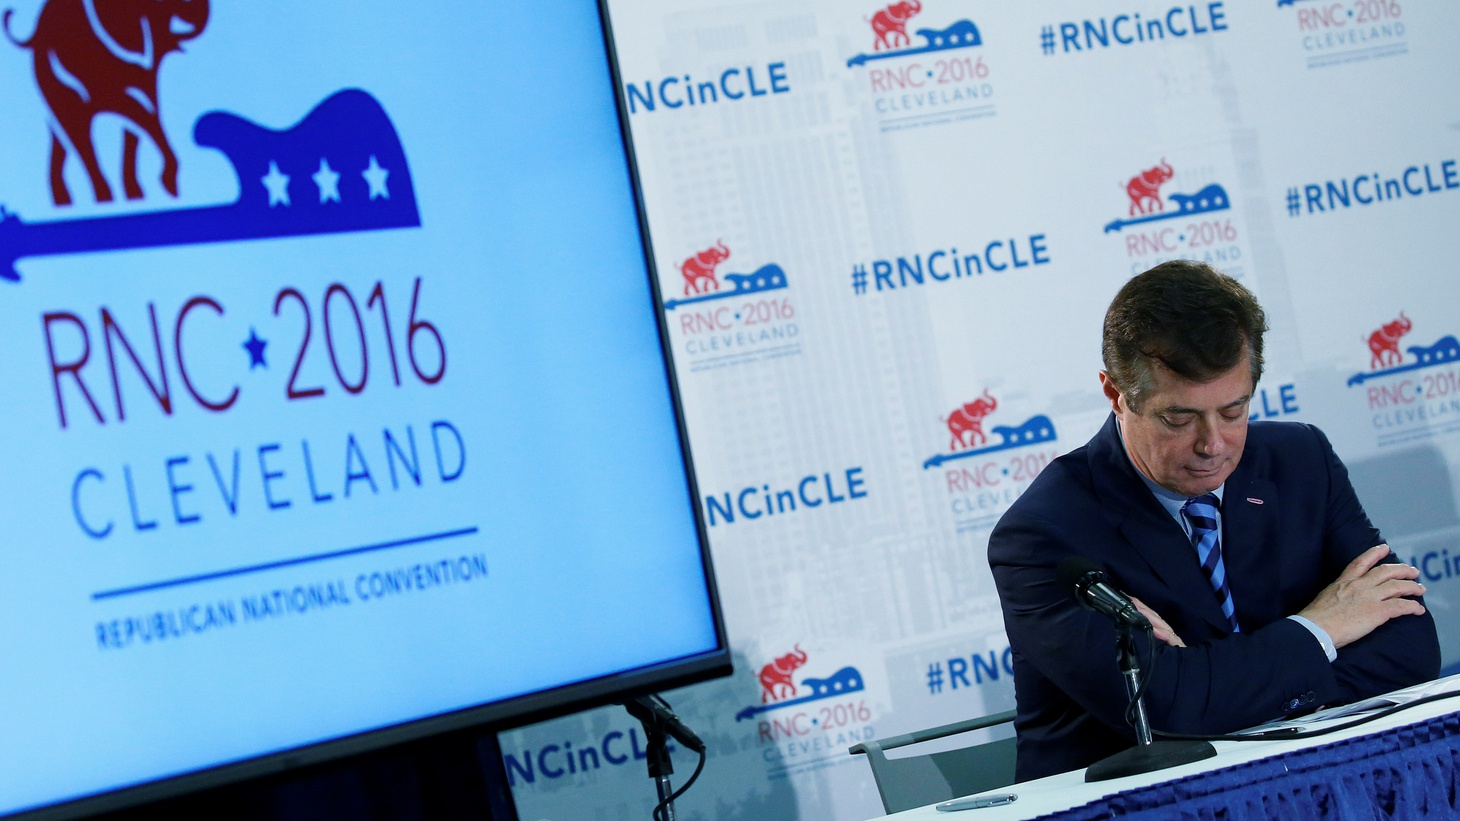 Presidential candidate Donald Trump's campaign chair and convention manager Paul Manafort appears at a press conference at the Republican Convention in Cleveland, July 19, 2016.